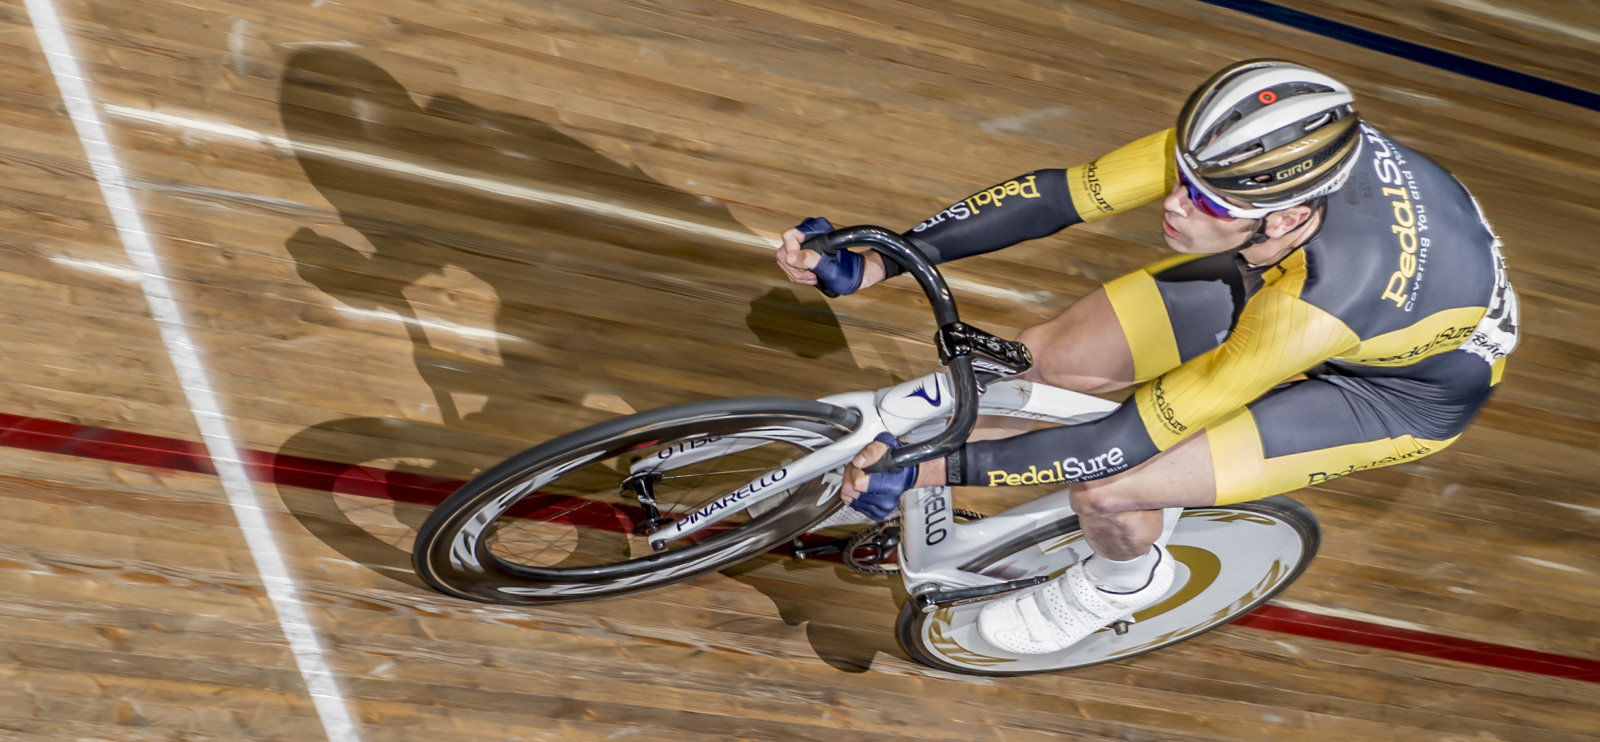 Andy Tennant for Pedalsure